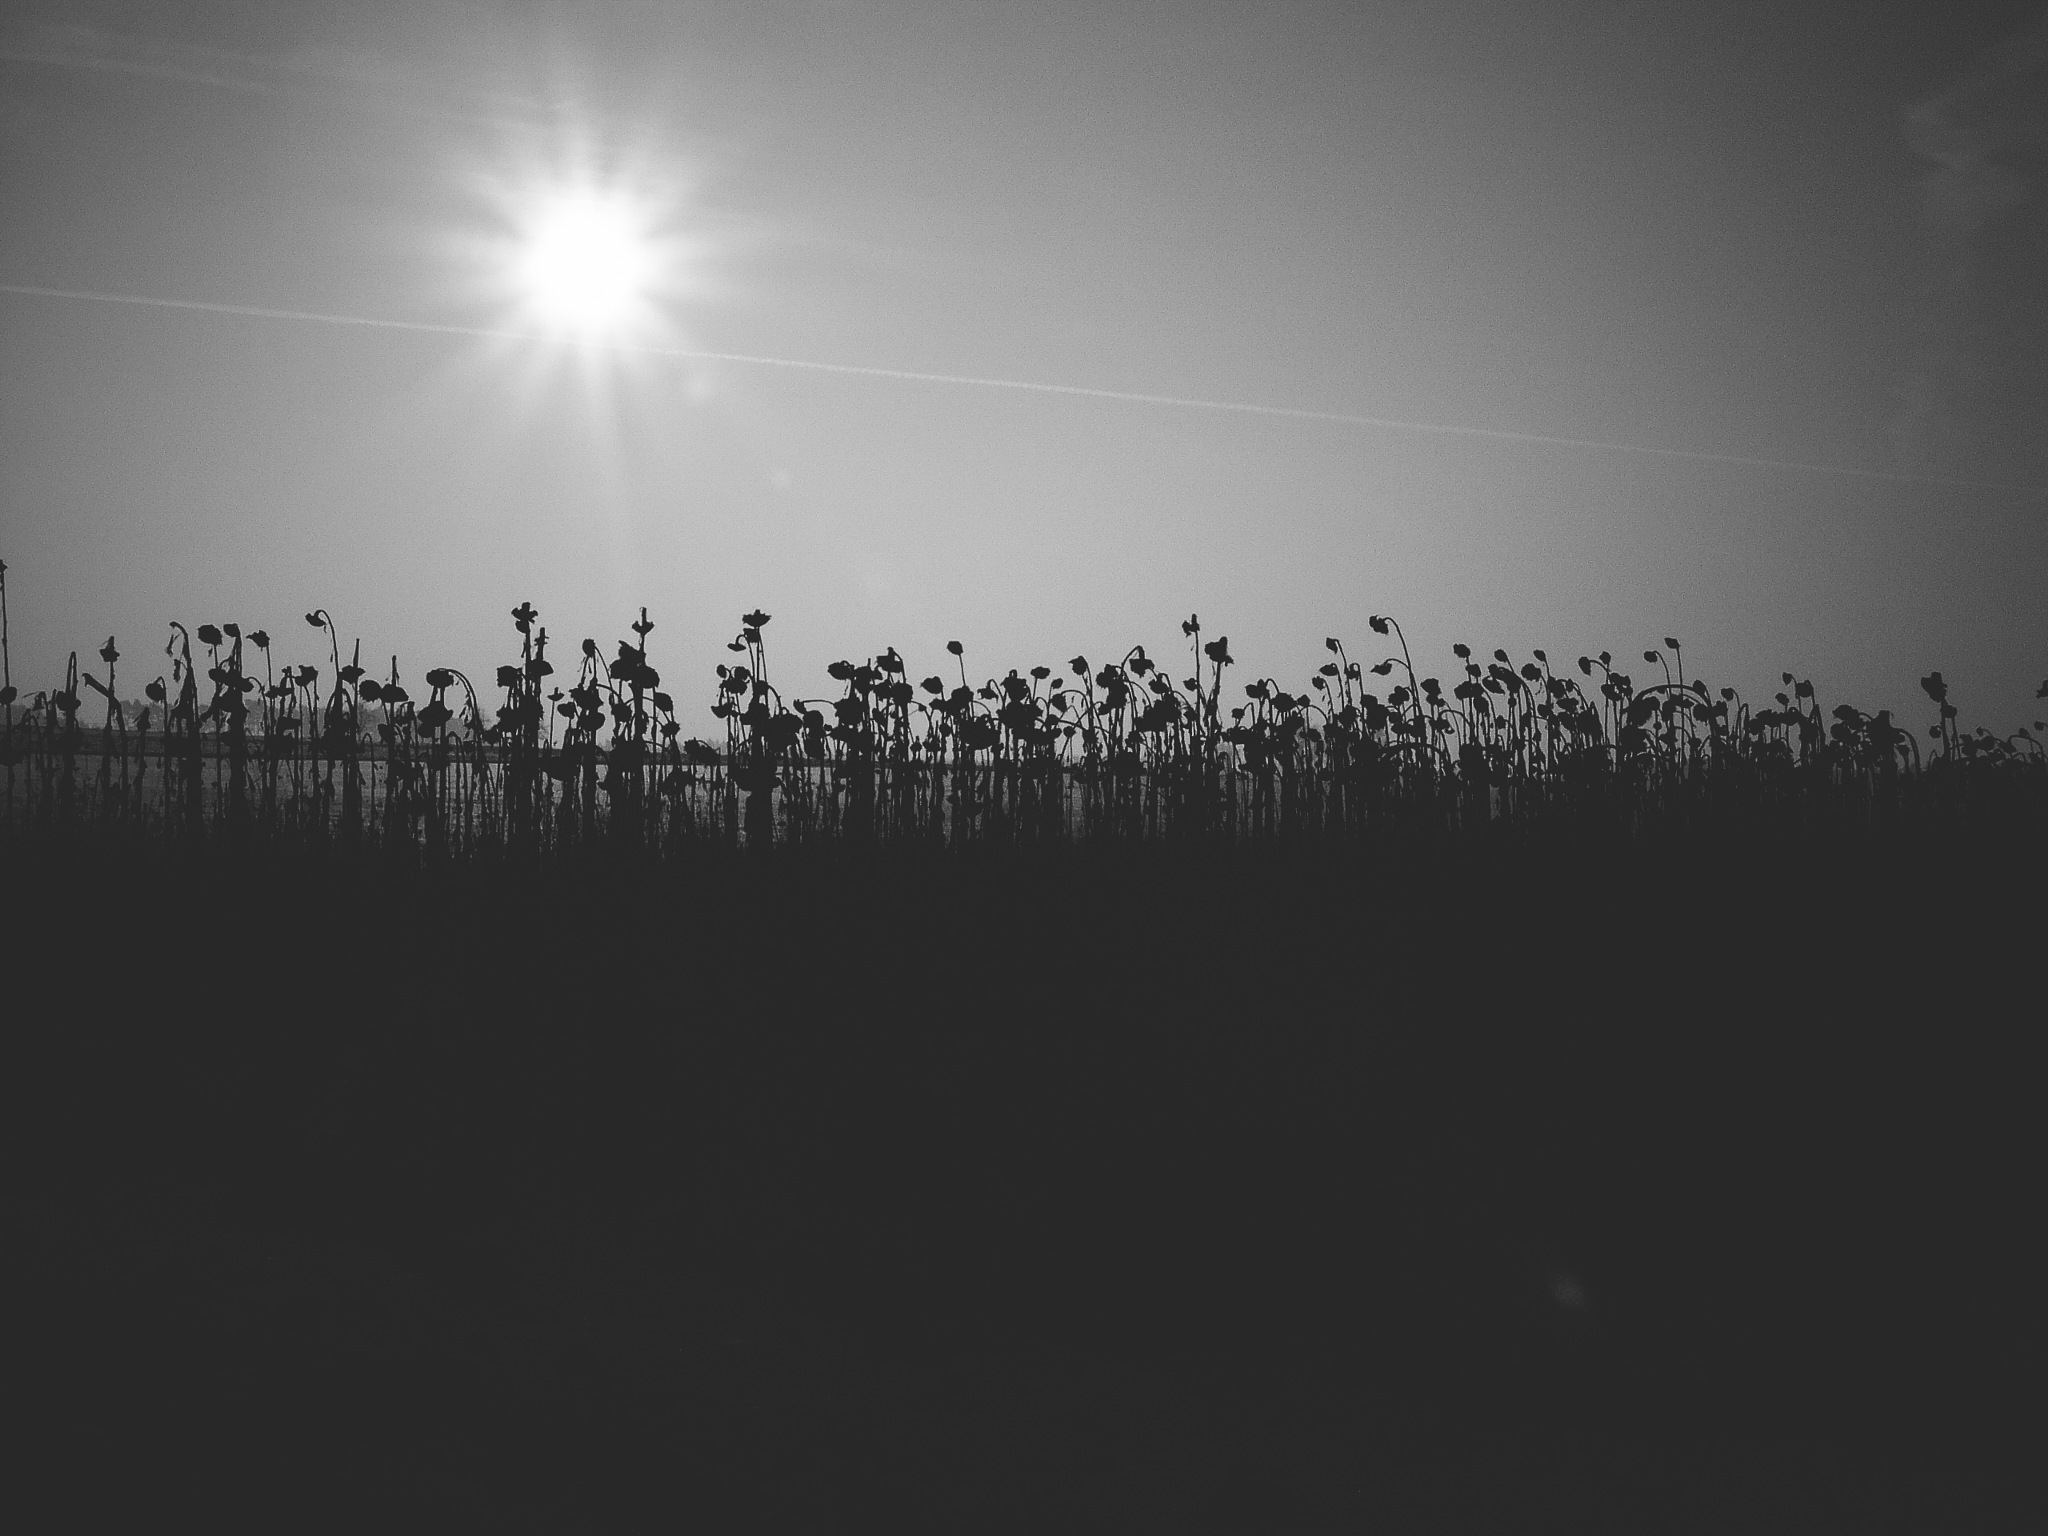 Dead Sunflowers by Michael Geller